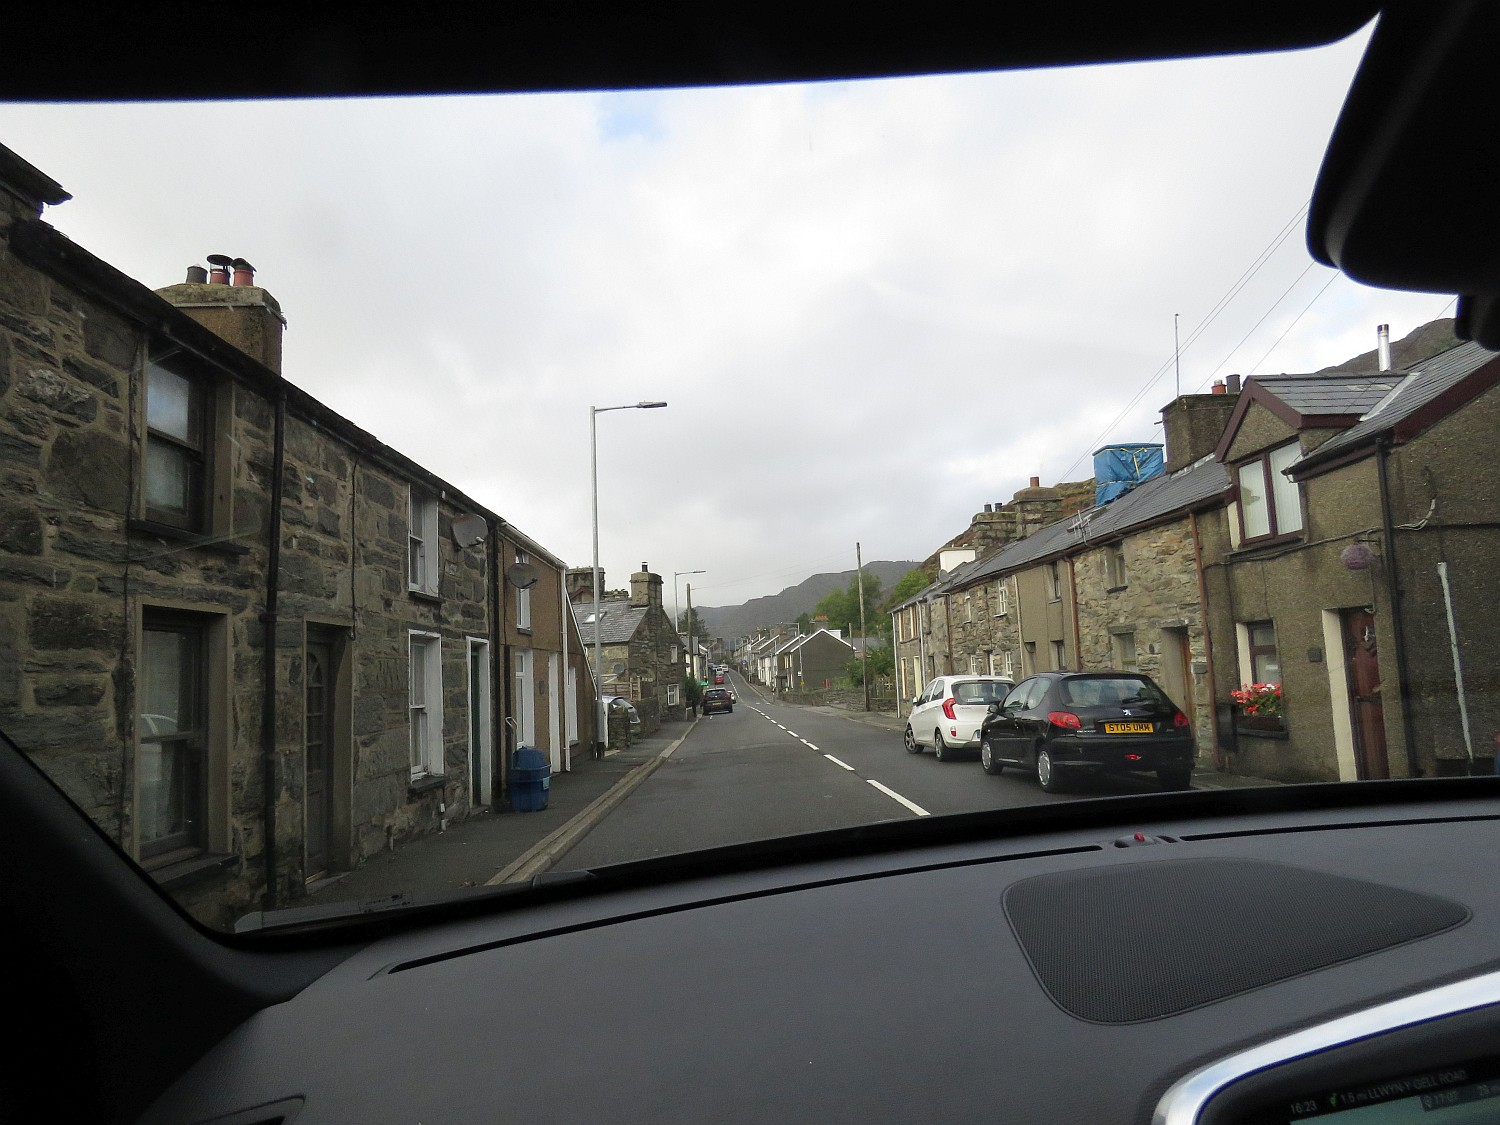 Driving through a typical mining town.